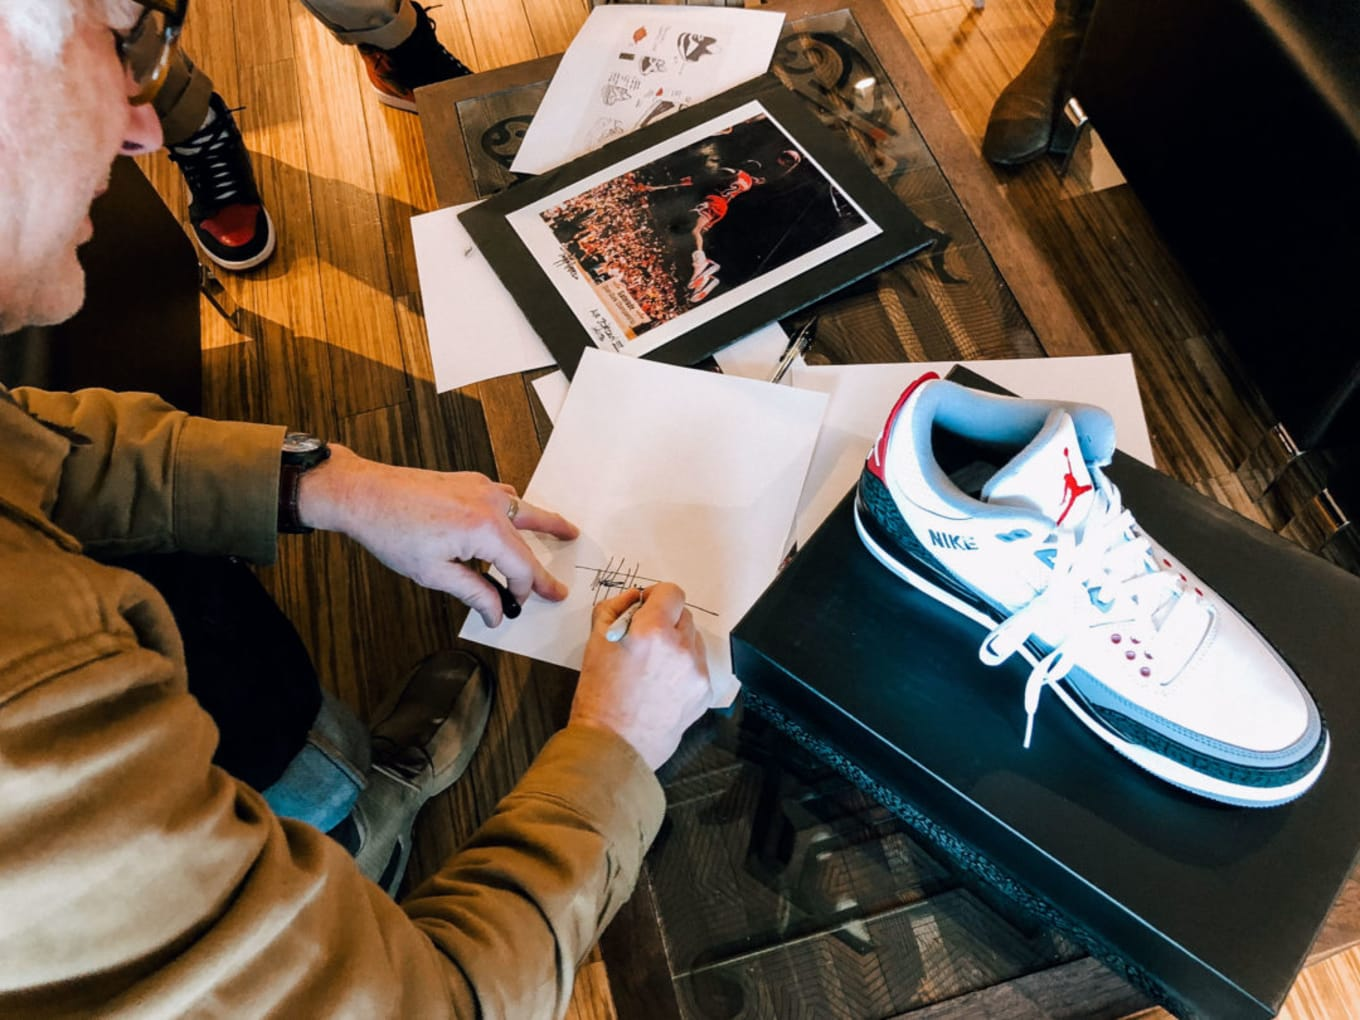 b7098c3d85b4b4 Tinker Hatfield Took the Swoosh Off the Air Jordan 3 to Piss Off Nike. The  legendary designer explains his original concept for the sneaker.